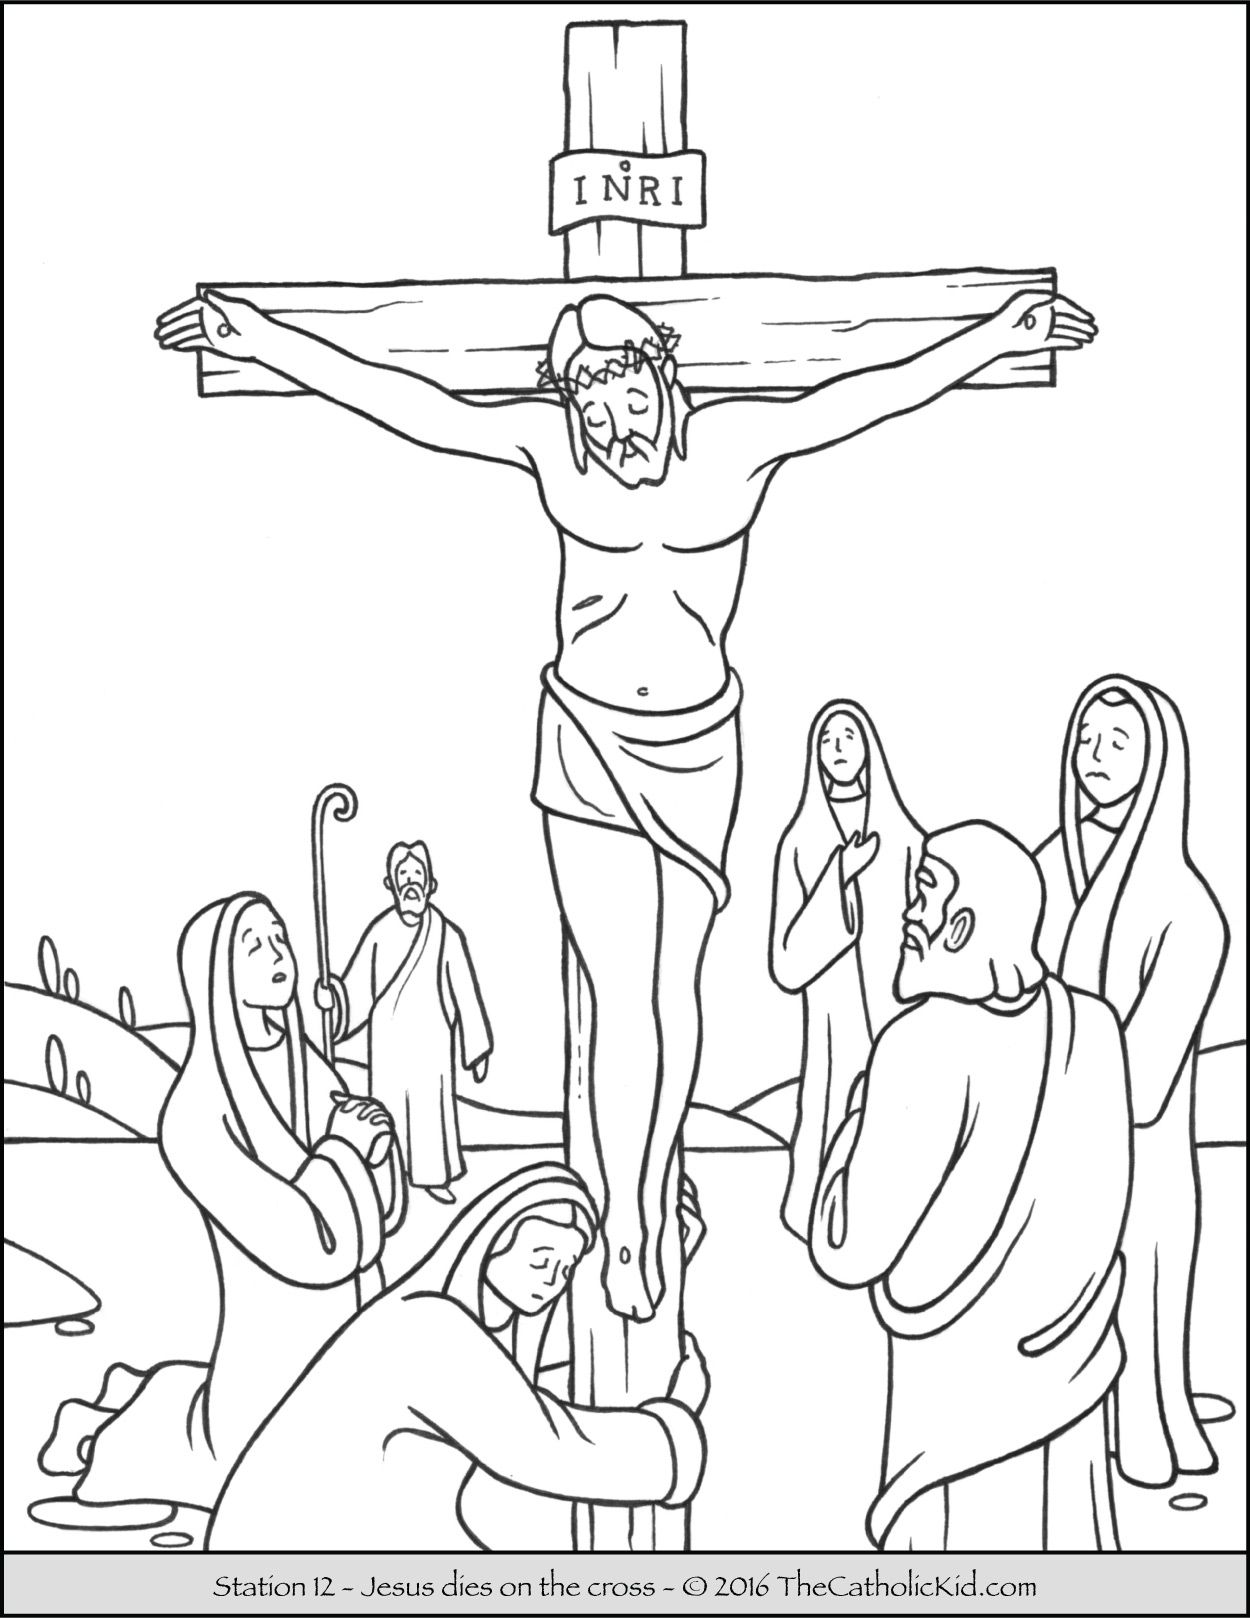 Printable coloring pages religious items - Stations Of The Cross Coloring Pages 12 Jesus Dies On The Cross